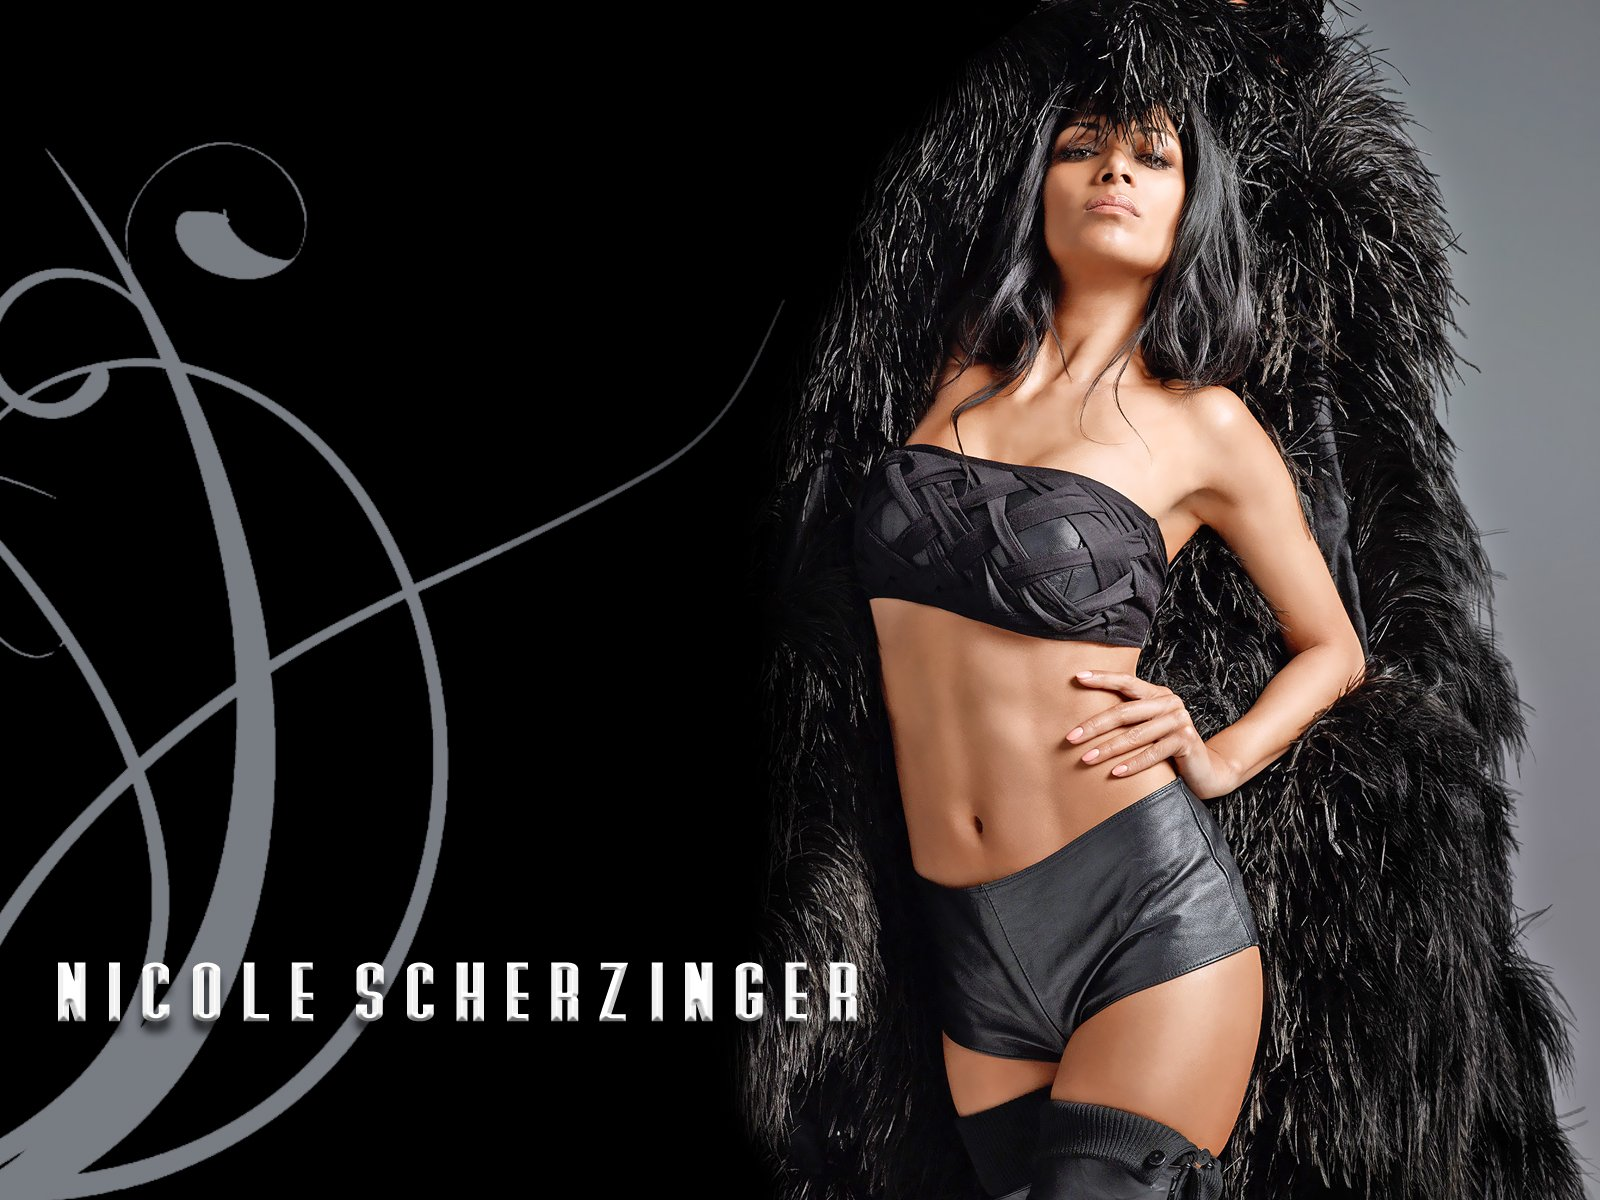 nicole scherzinger hd photos | beta pics